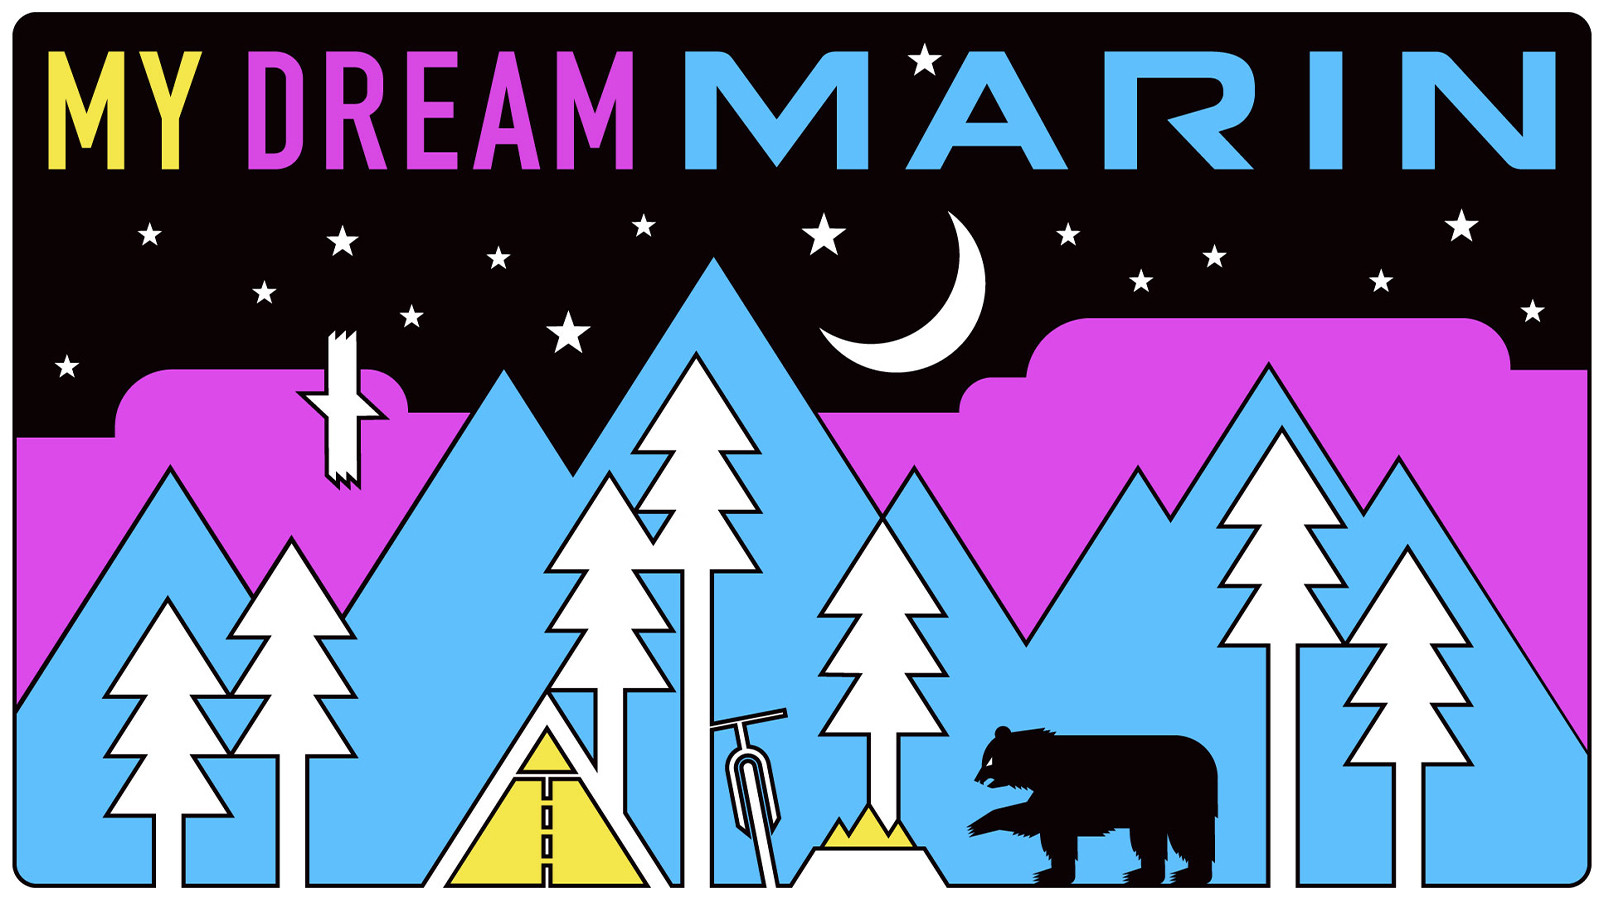 Marin Coloring Contest, Win a Custom Painted Marin